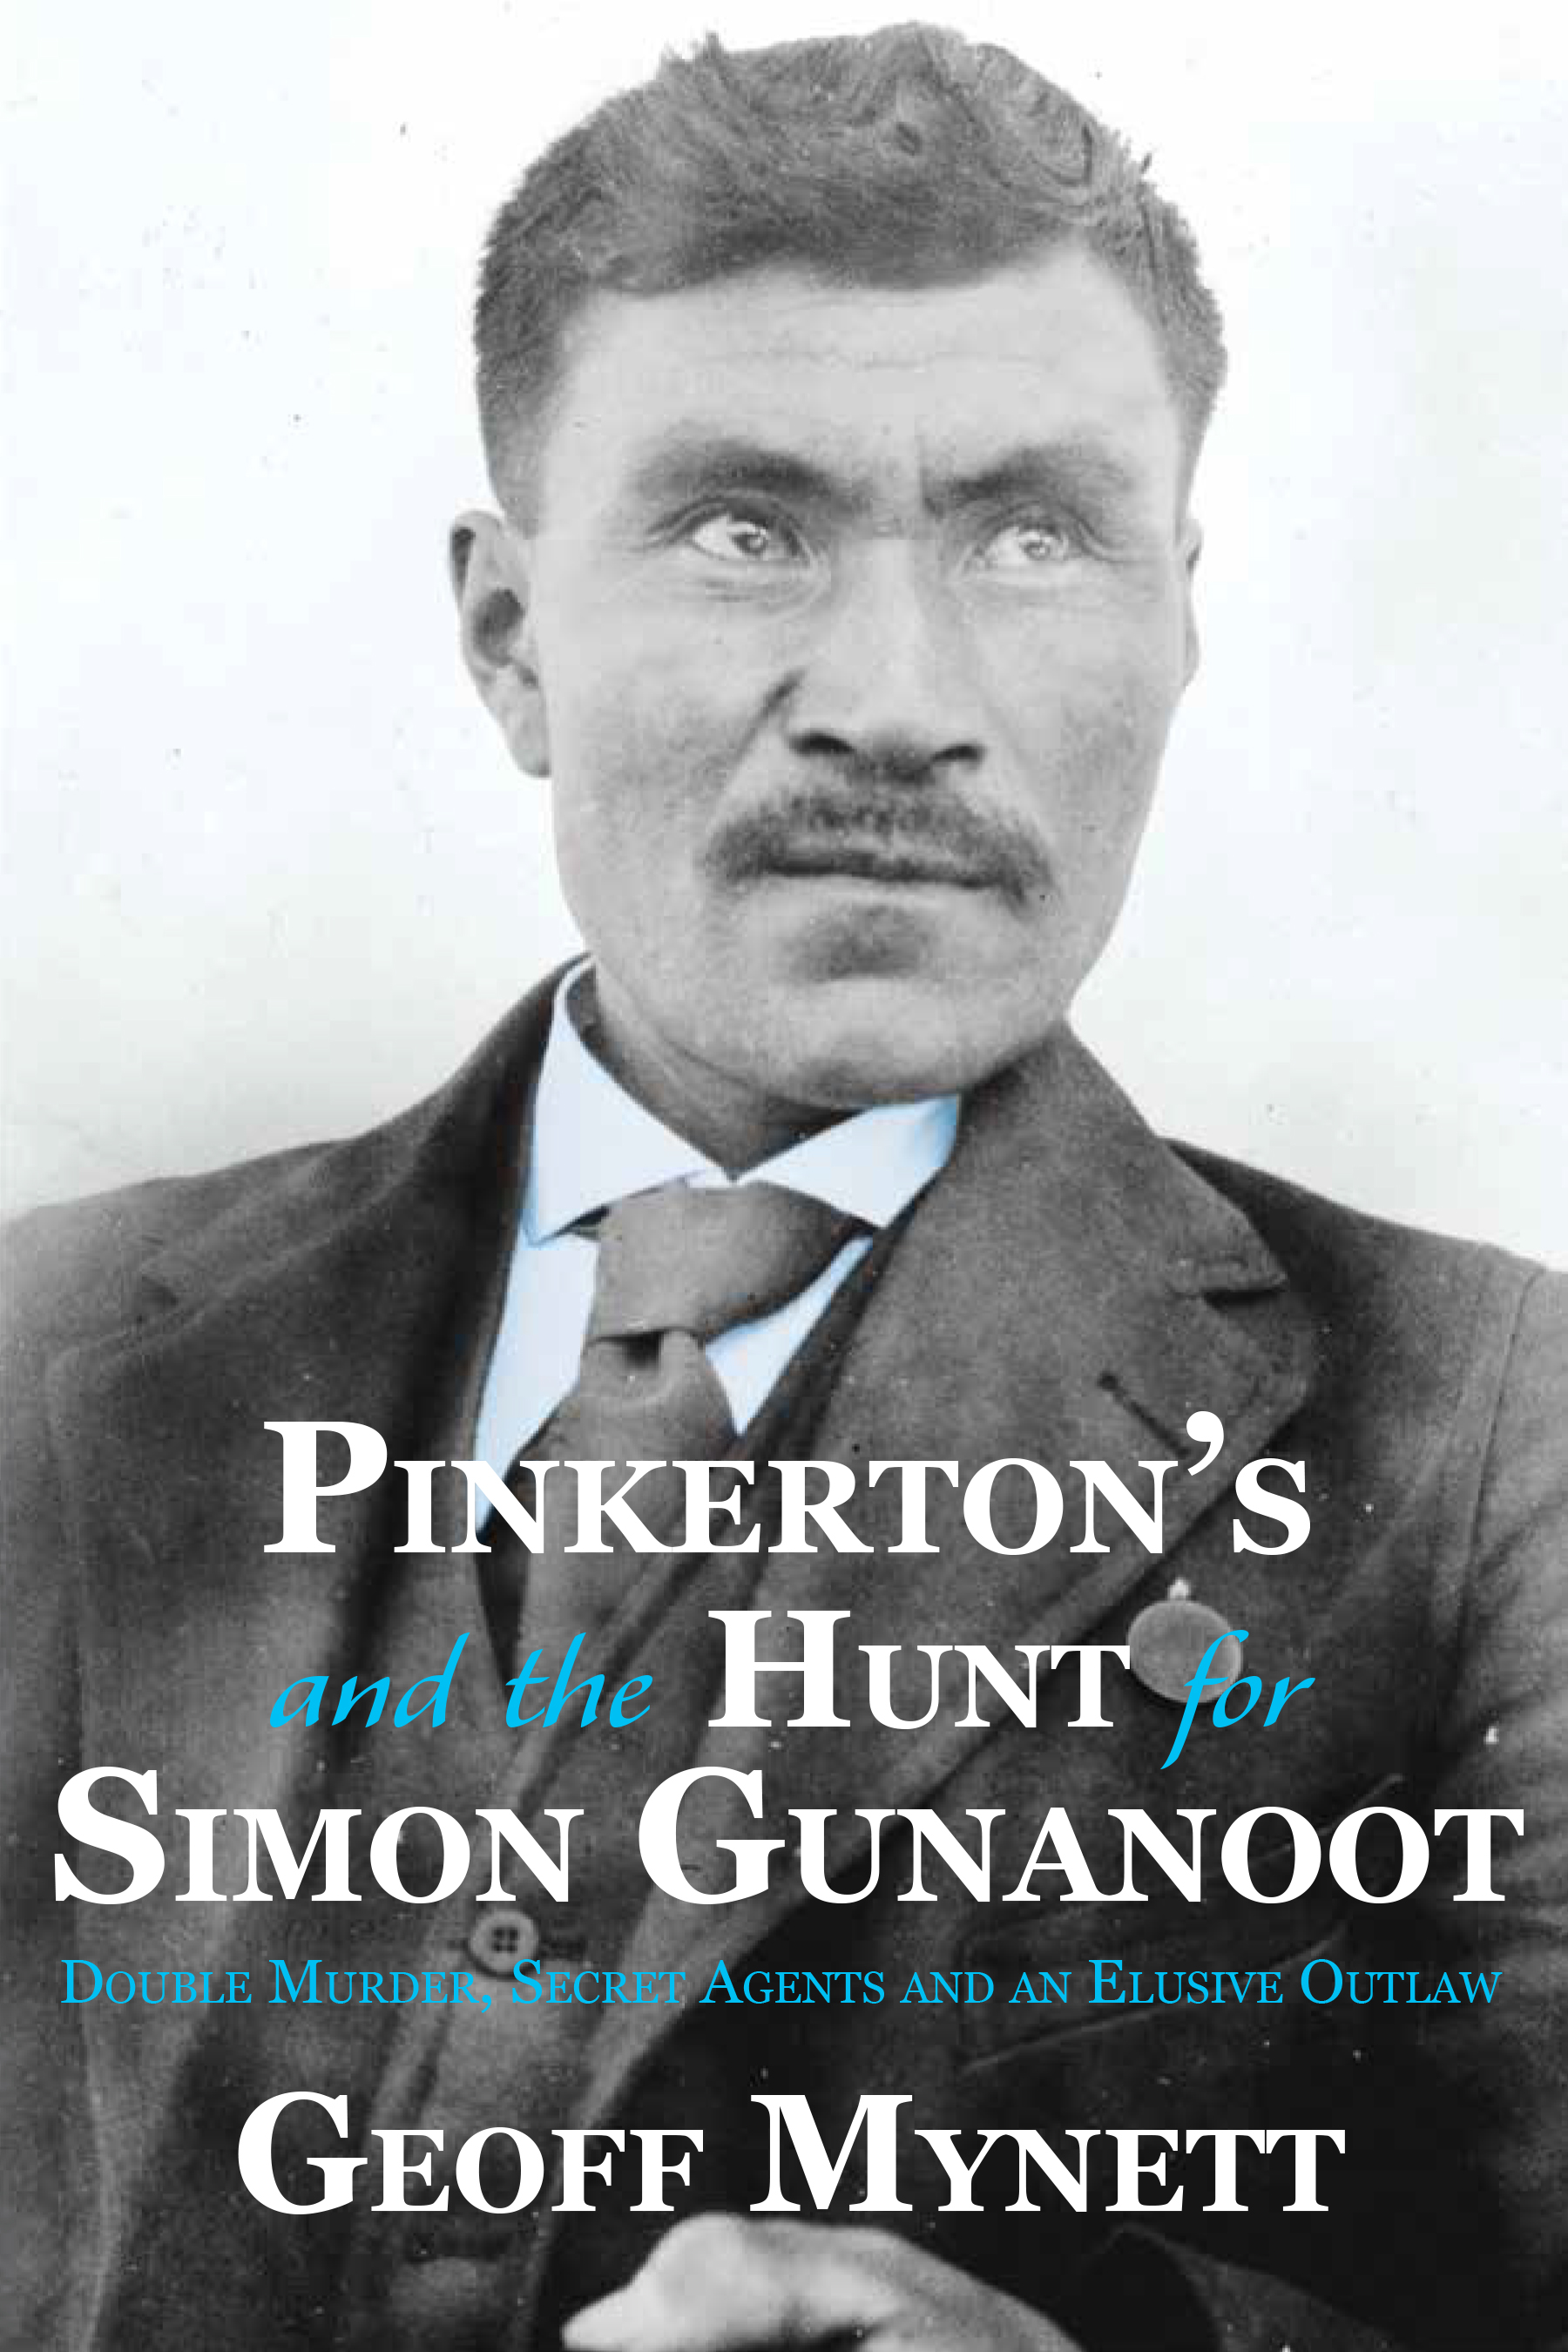 Pinkerton's and the Hunt for Simon Gunanoot